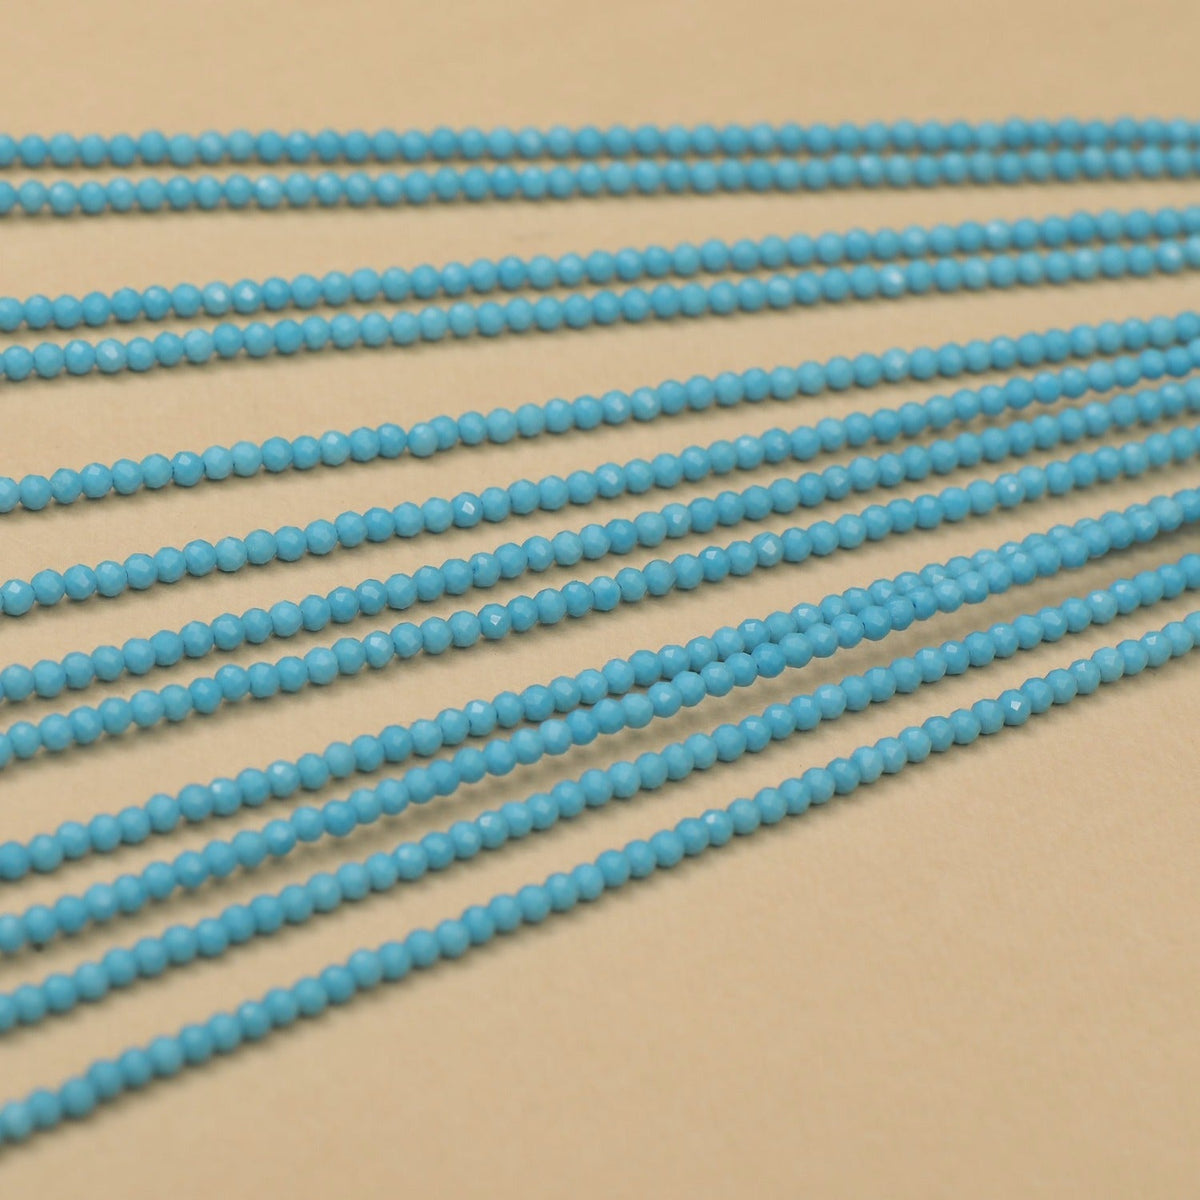 Chinese Turquoise Beads- Sold Per Stand